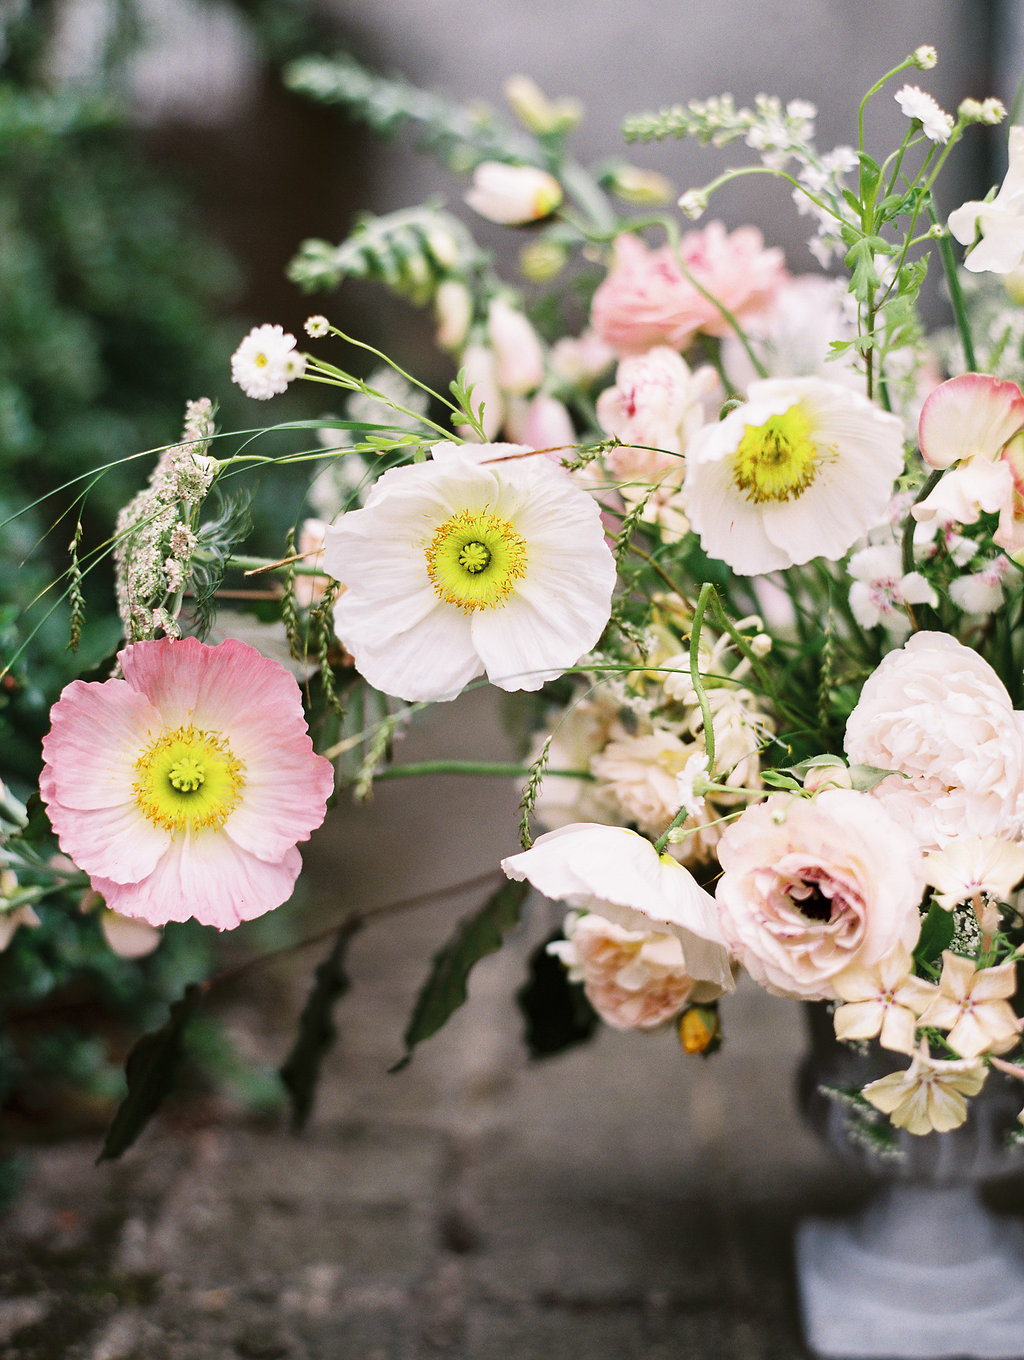 pink anemones with yellow centers - photo by As Ever Photography http://ruffledblog.com/the-secret-garden-inspired-wedding-in-ireland